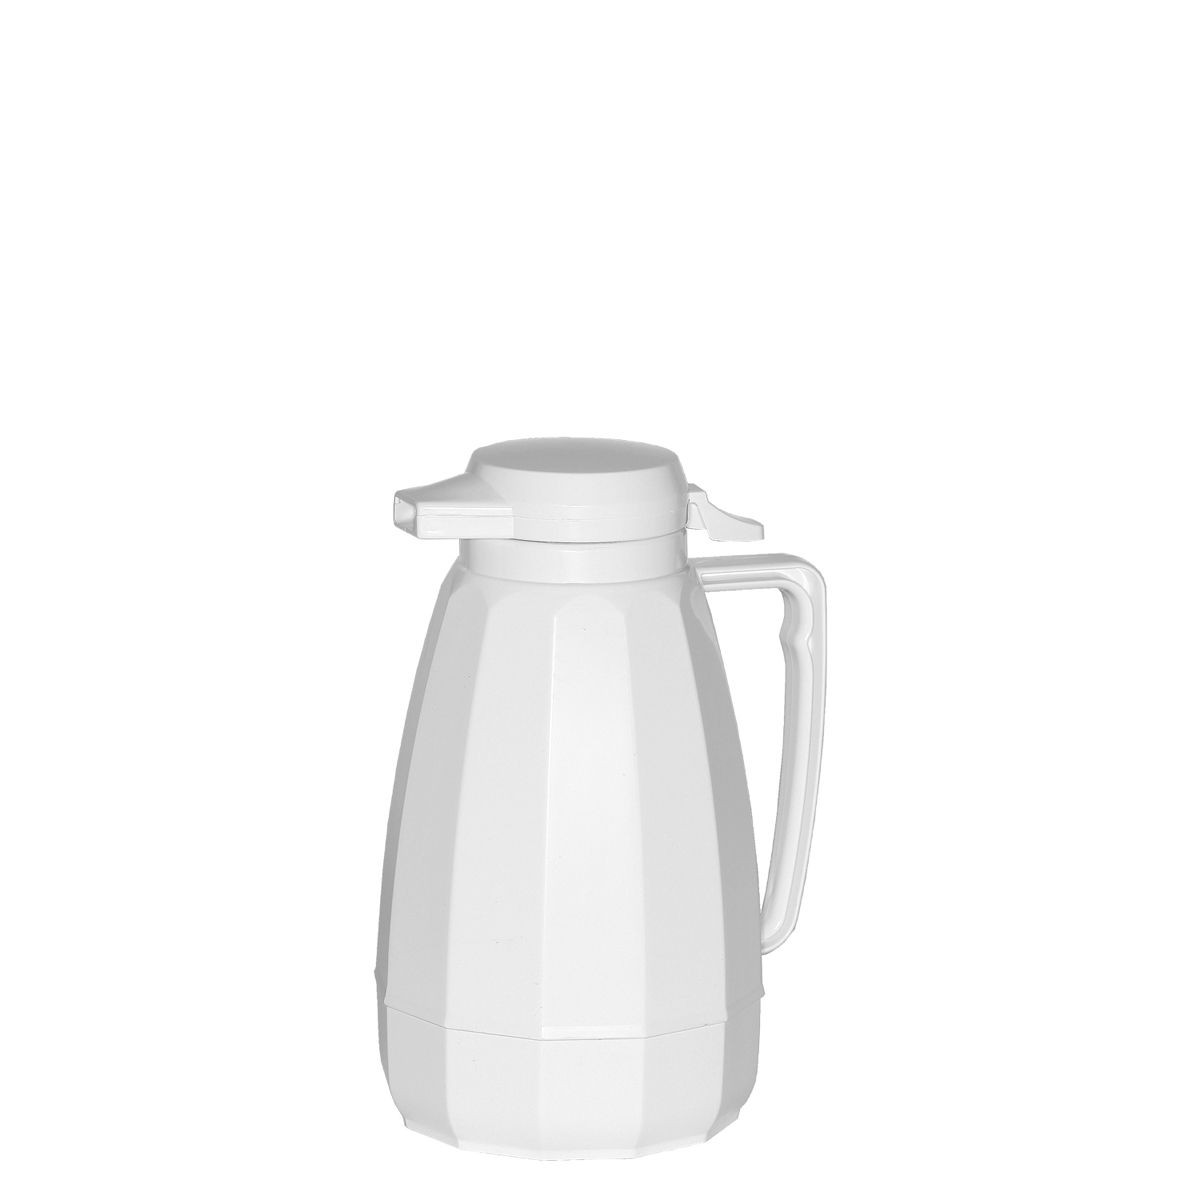 Service Ideas NG101WH White New Generation Coffee Server, 1 Liter (34 oz.)